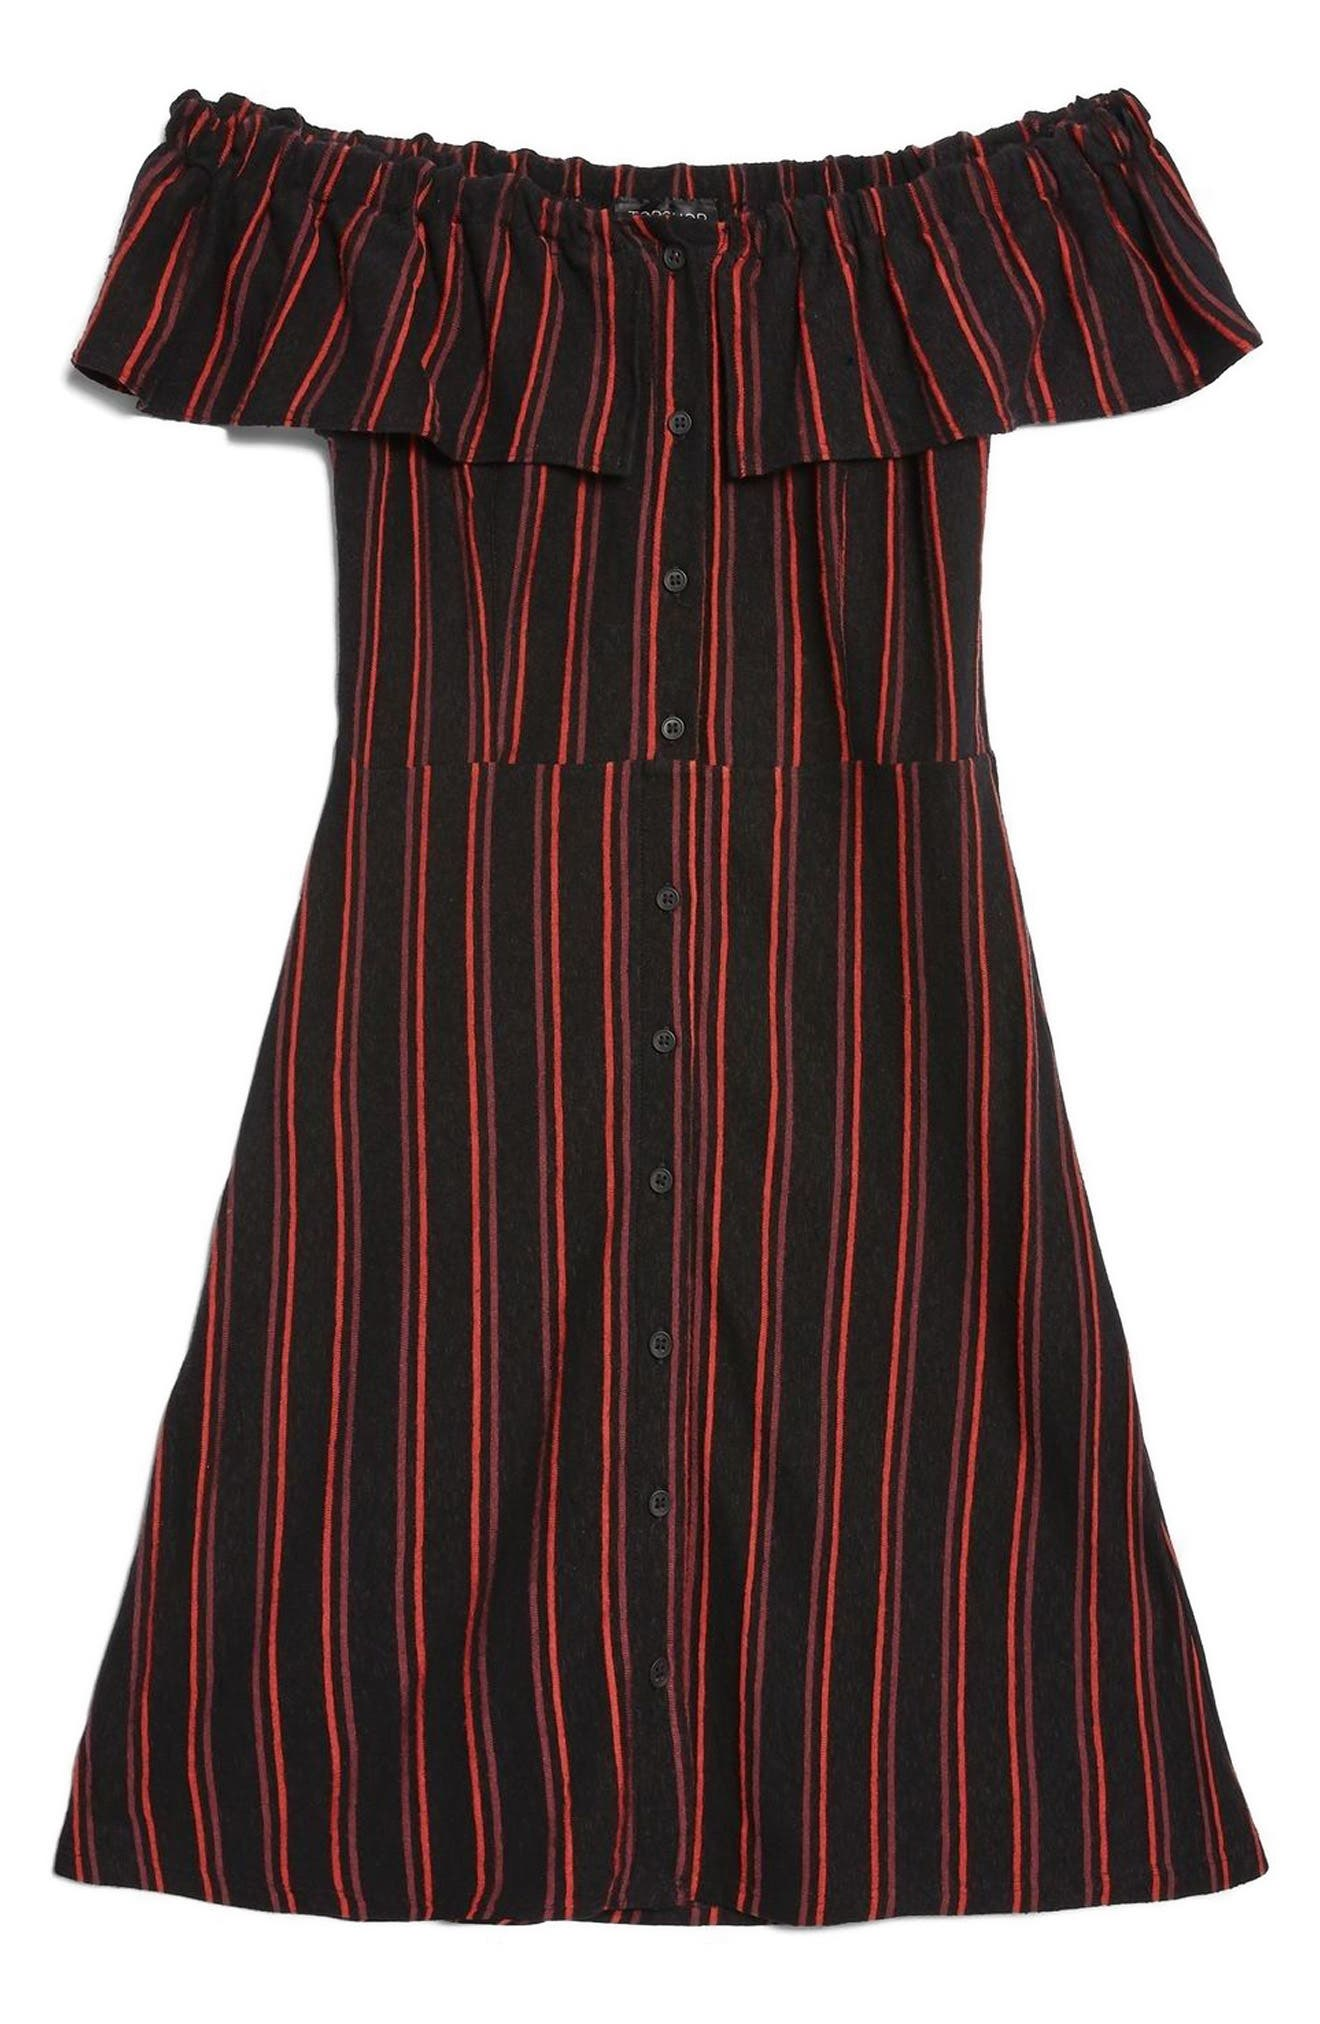 Stripe Frill Bardot Dress,                             Alternate thumbnail 3, color,                             Black Multi